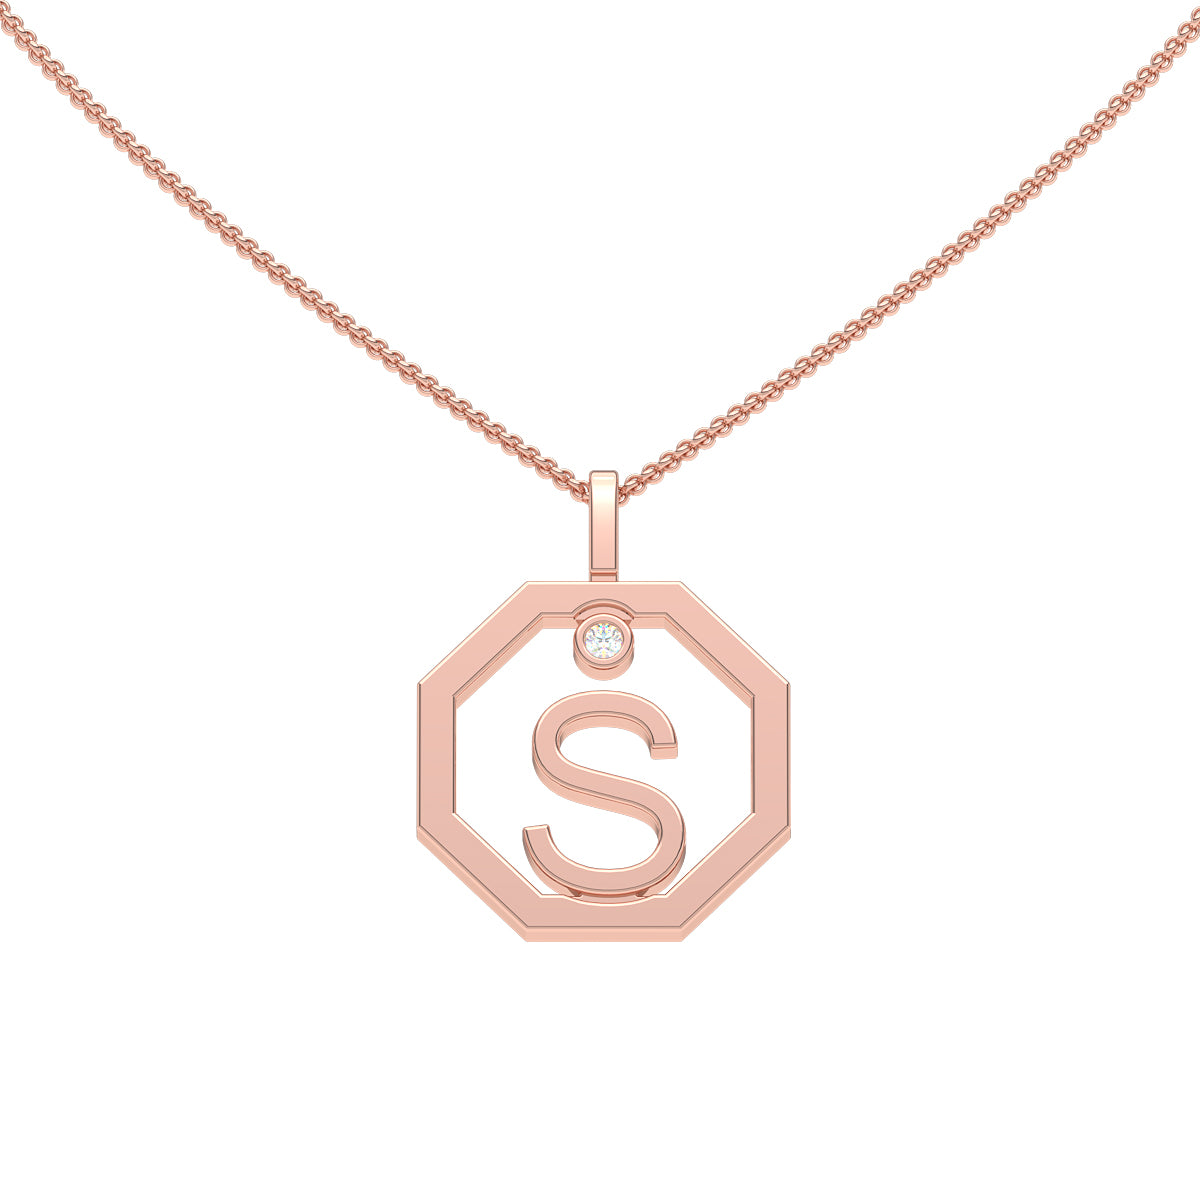 Personalised-Initial-S-diamond-white-gold-pendant-by-Sydney-jewellers-Lizunova